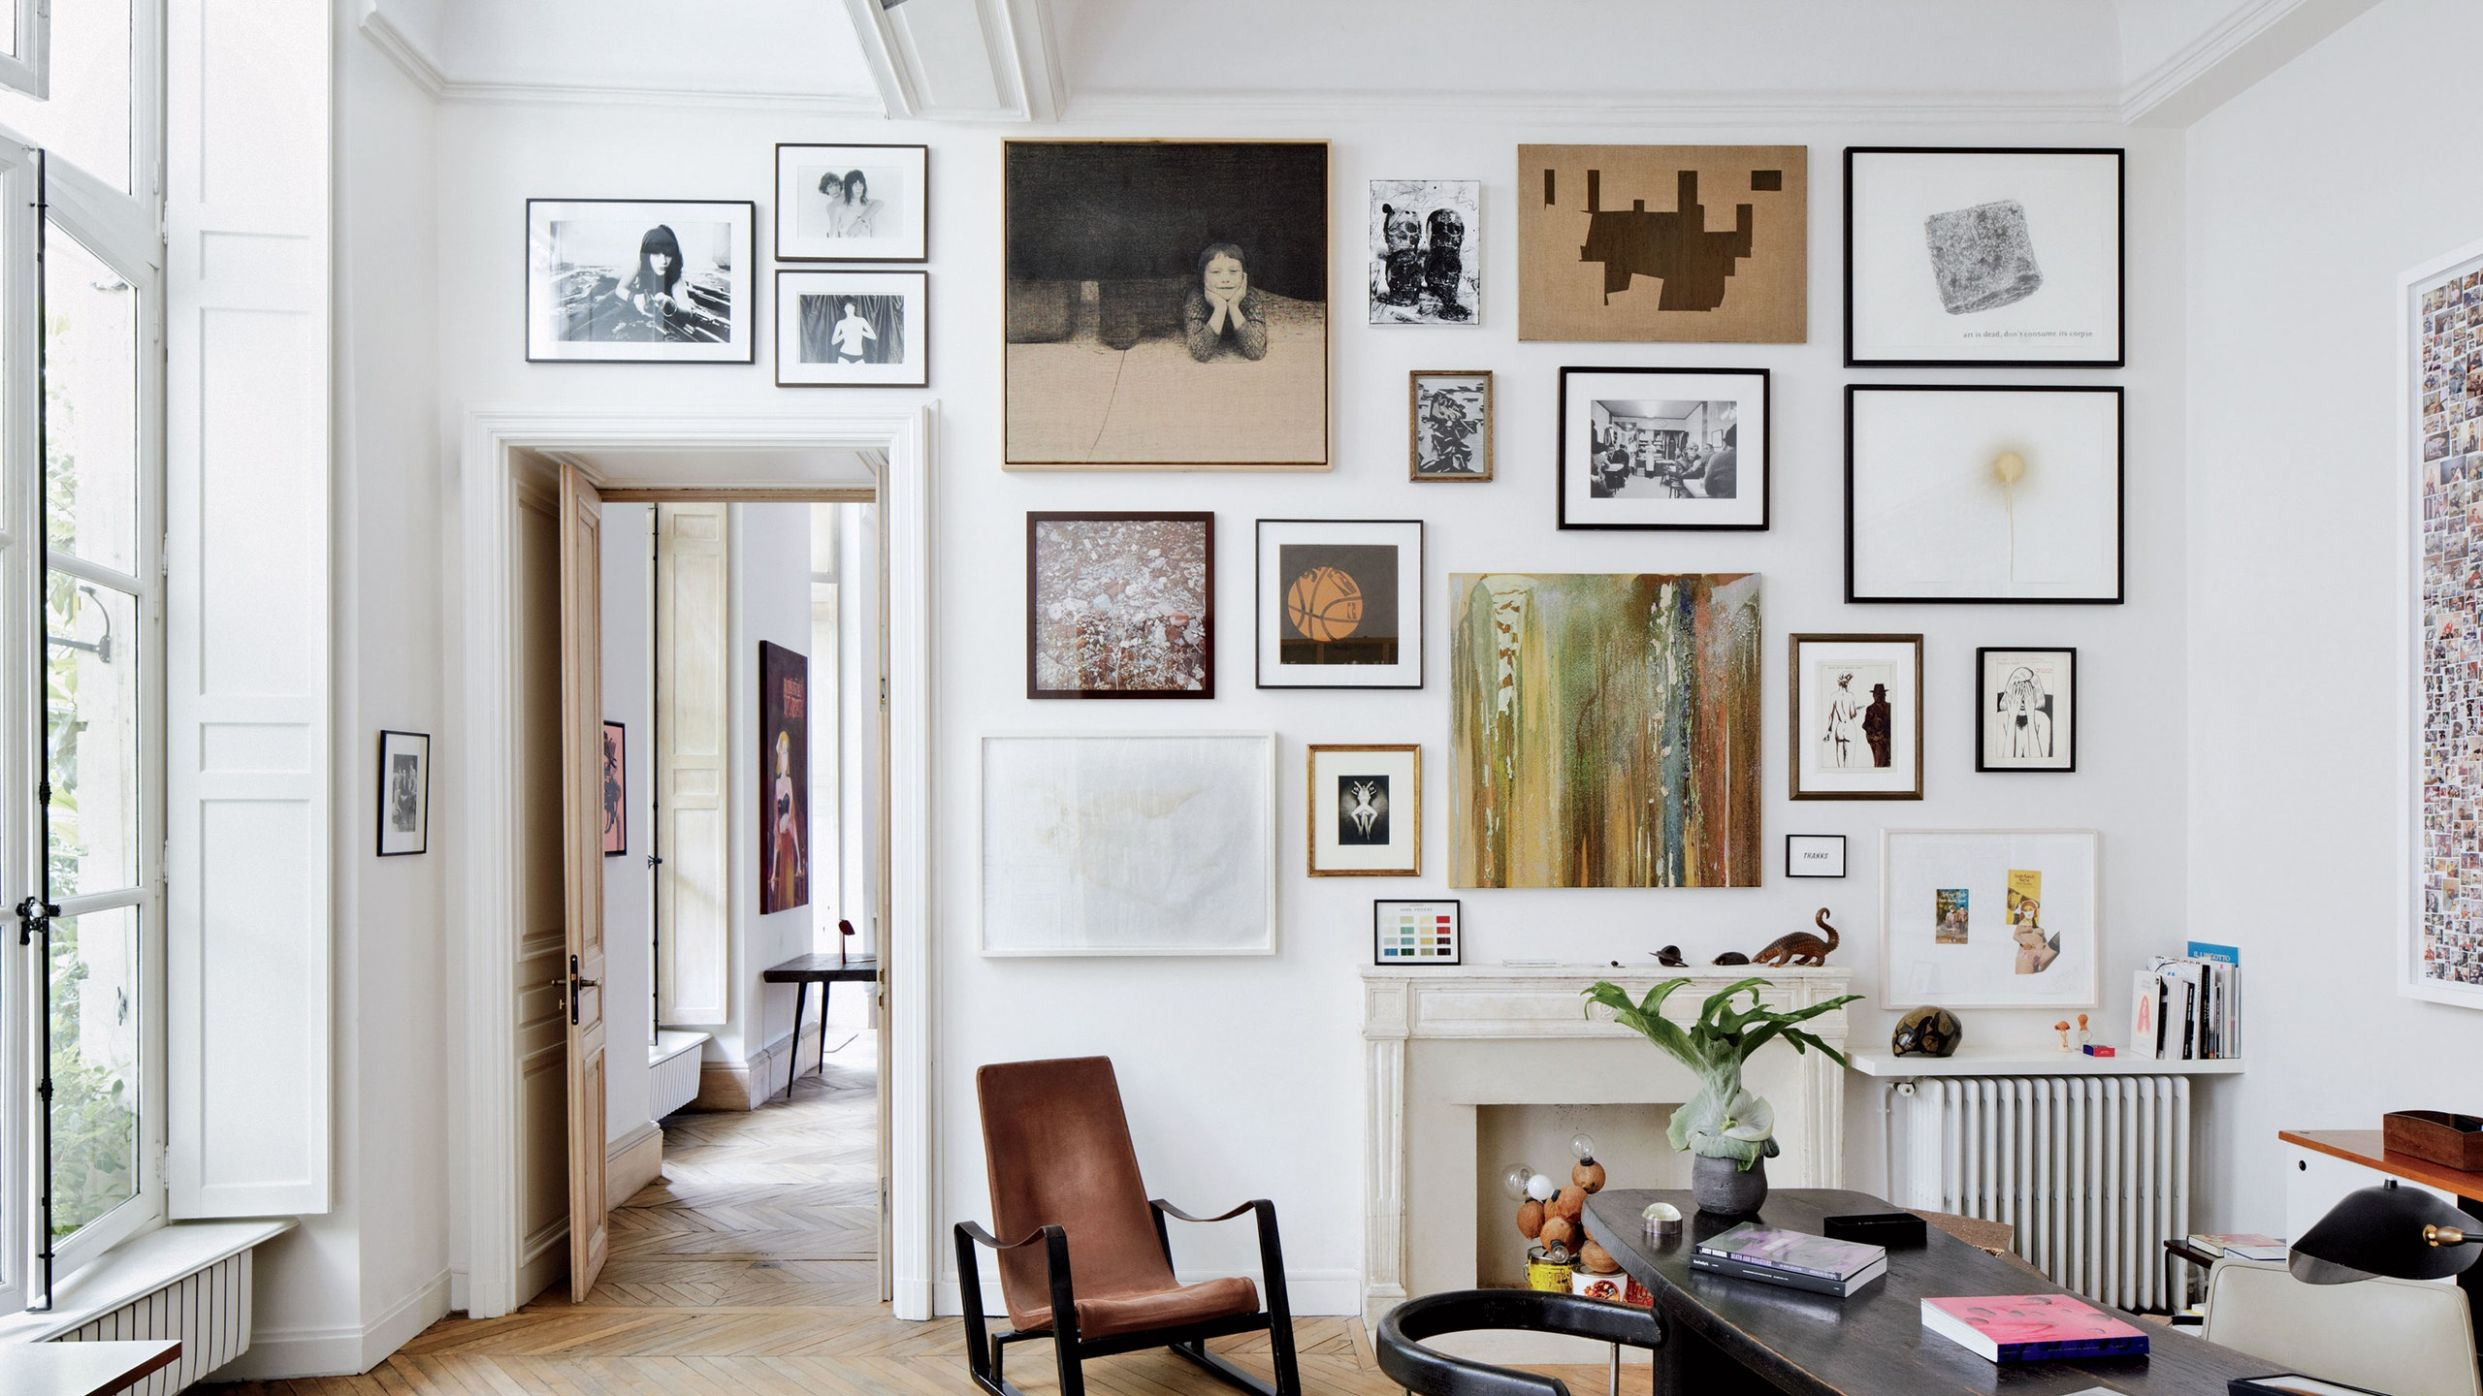 8 Wall Decor Ideas to Refresh Your Space | Architectural Digest - wall decor ideas living room